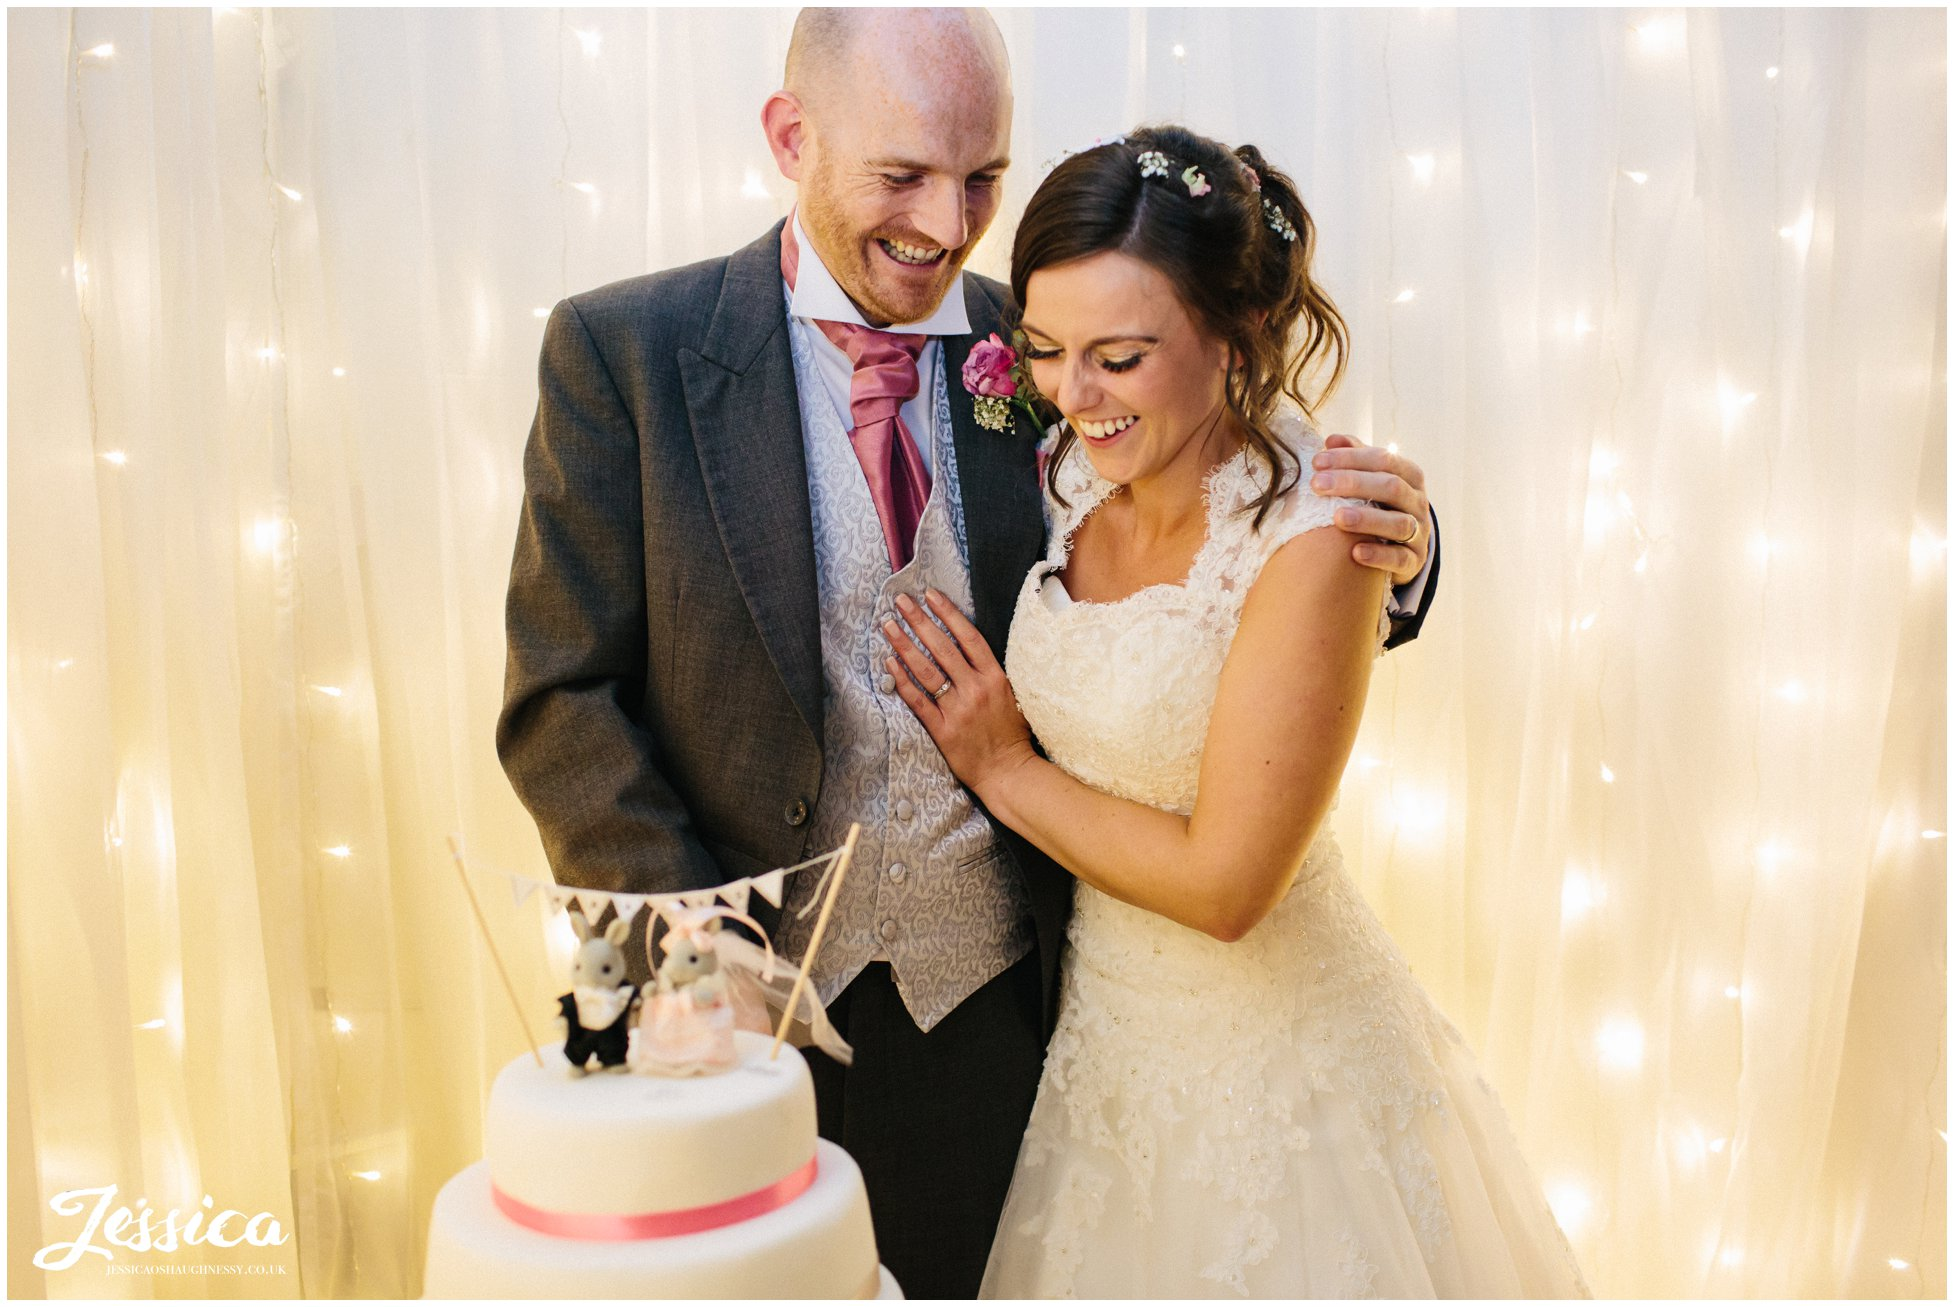 newly wed's cut their wedding cake - chester wedding photographer